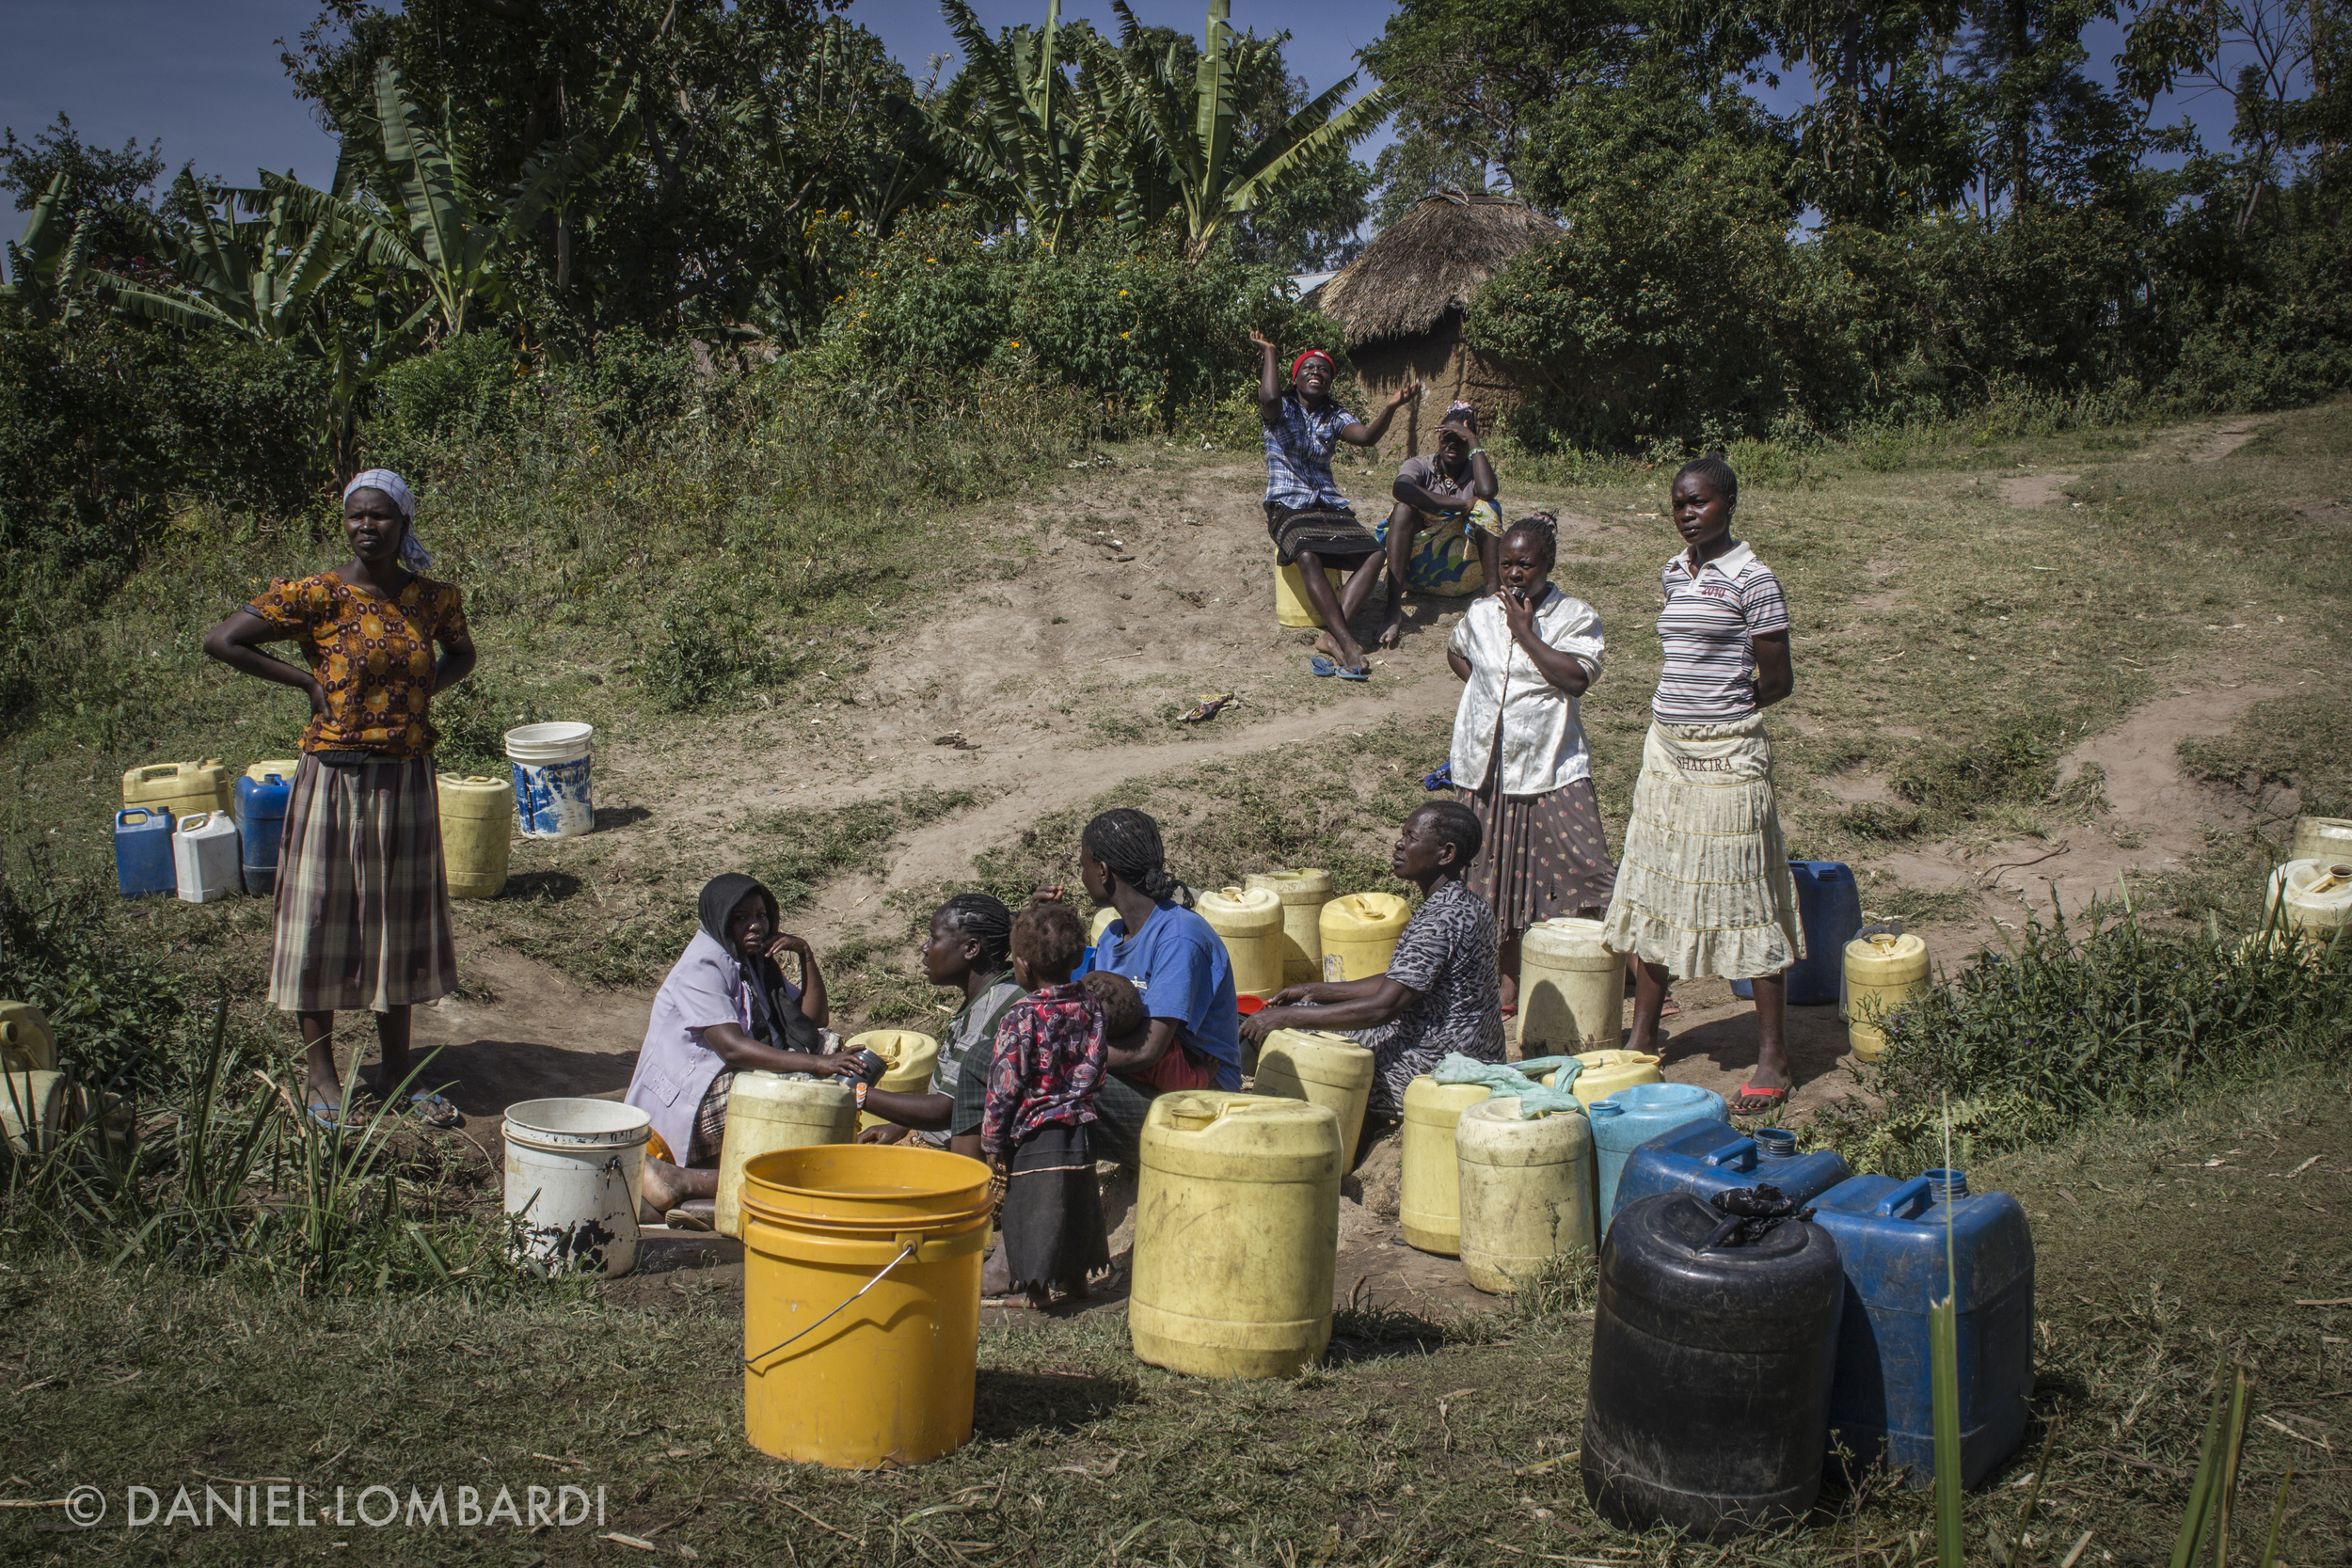 At this collection point tensions ran high as some people gathered water to make bricks to make money while other women gather water for cooking and drinking for their families.